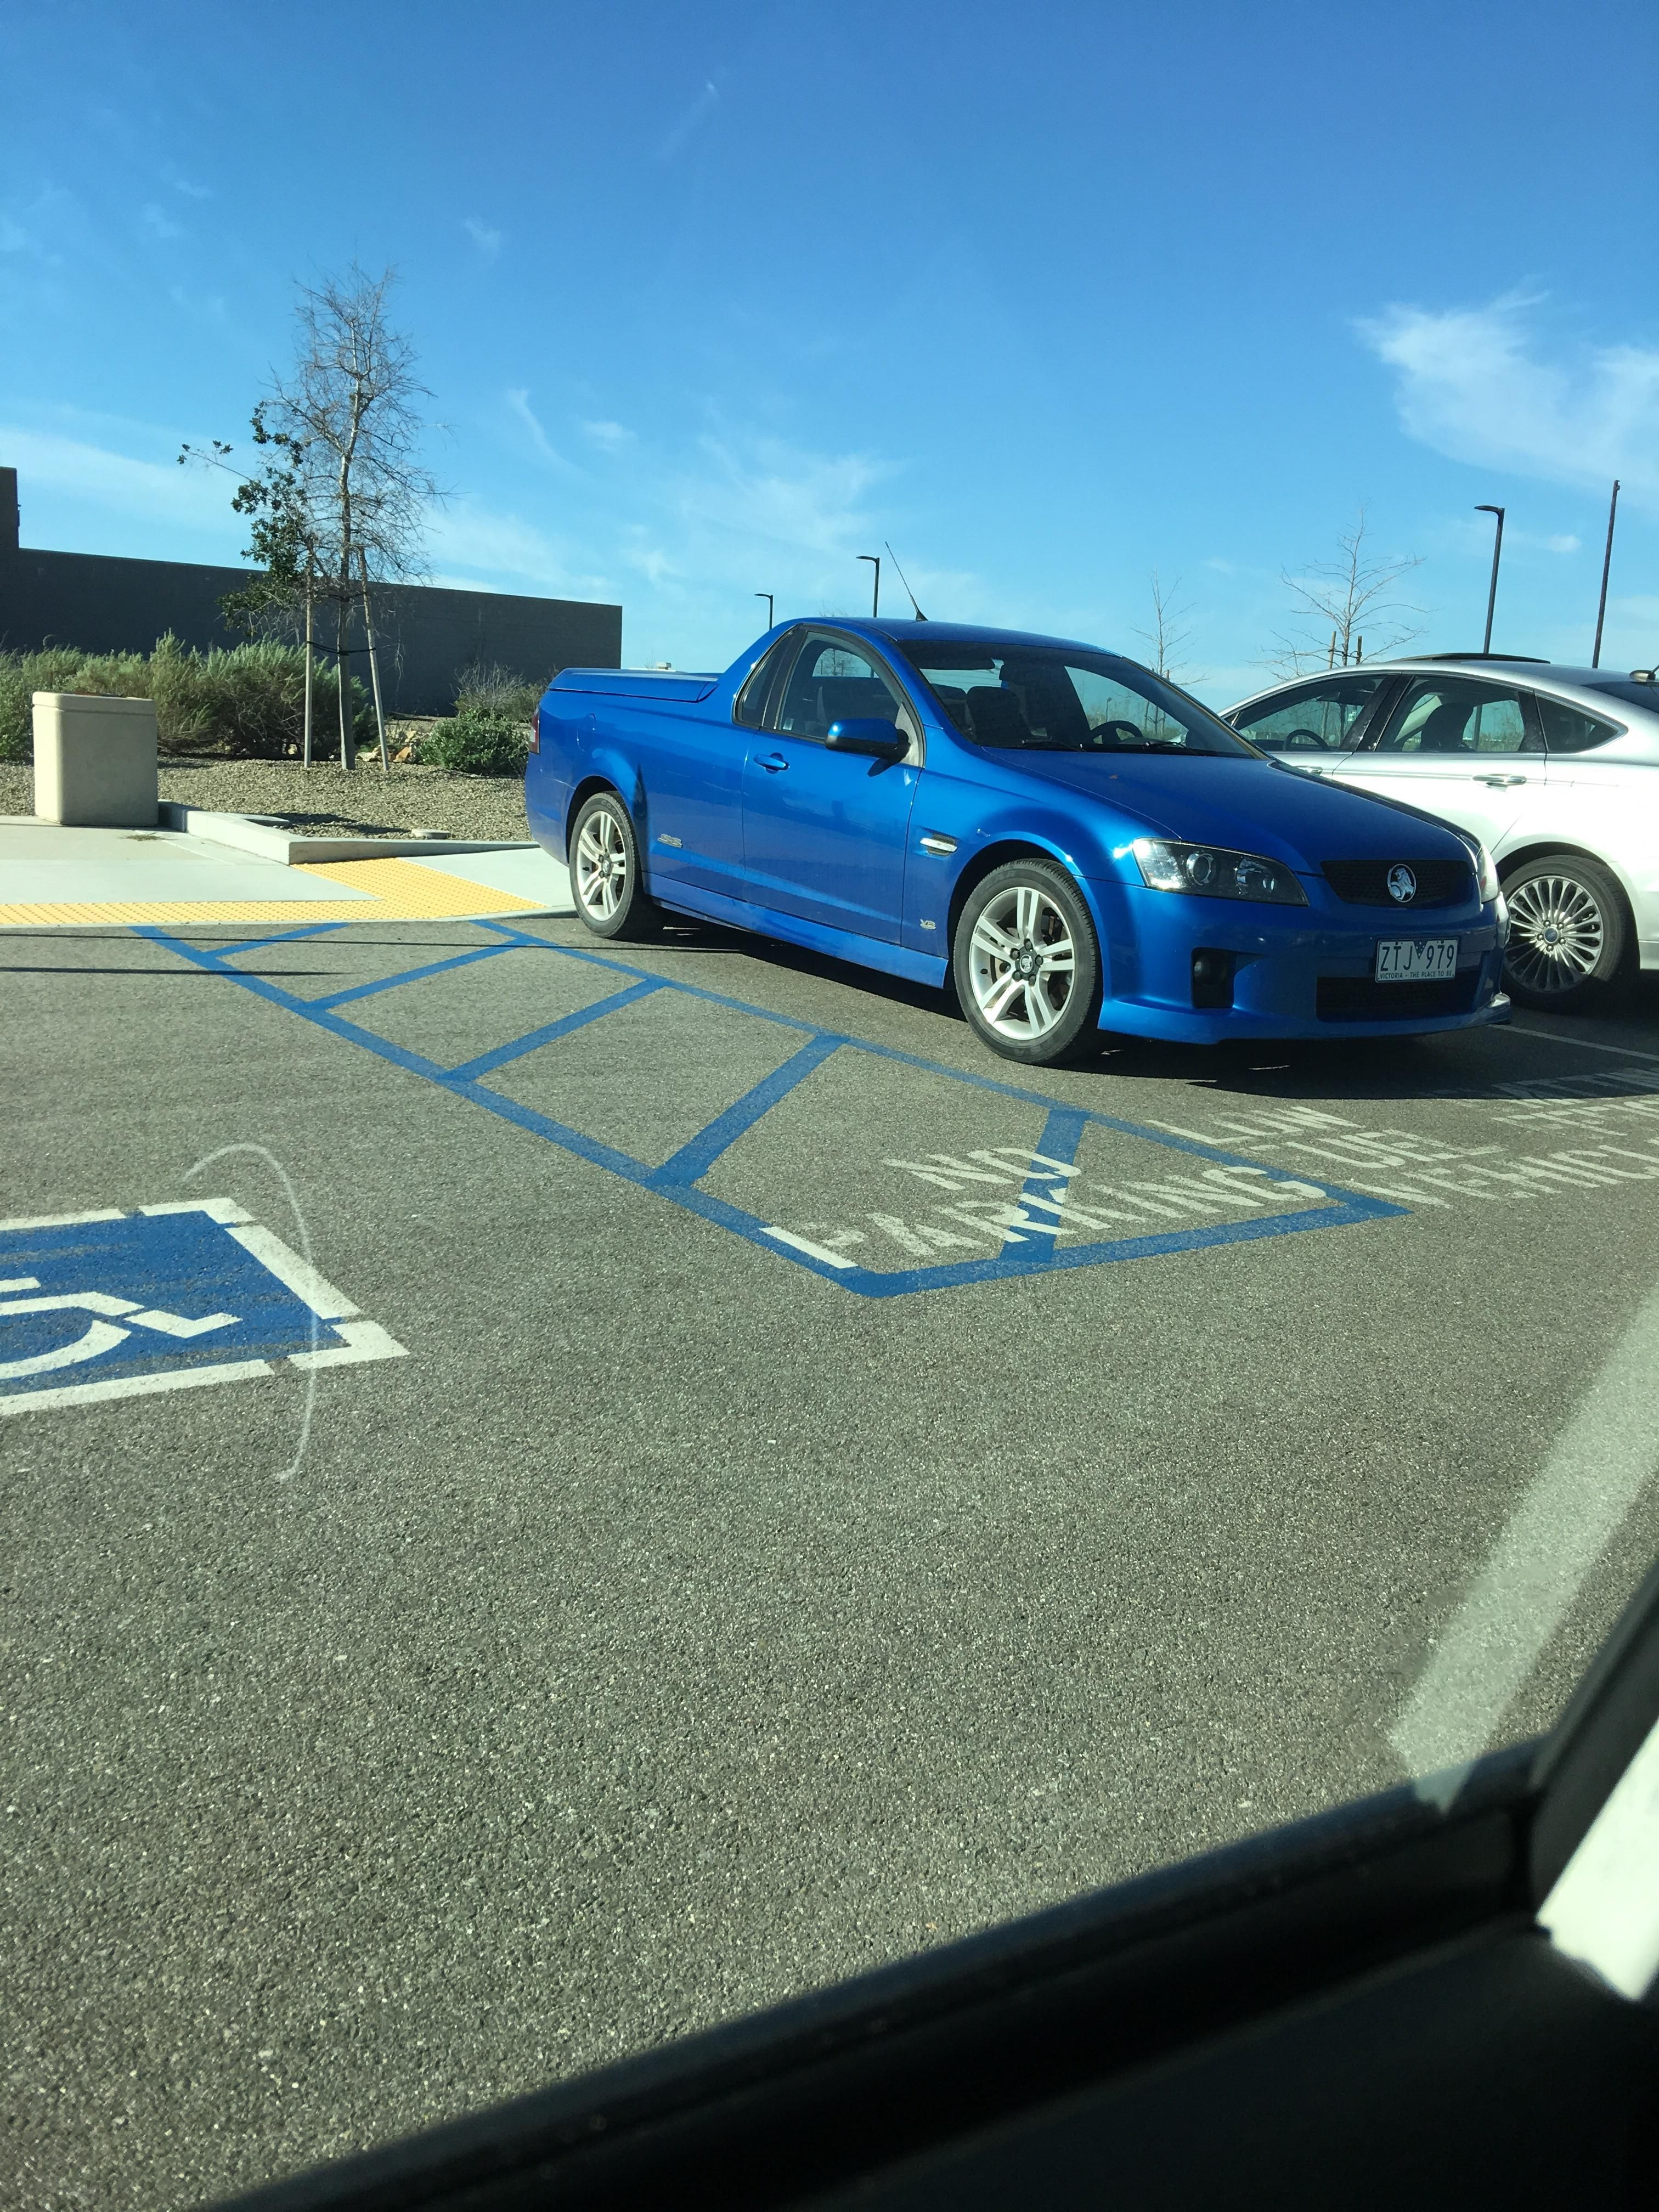 "Spotted on a Navy base outside of Malibu... has US tags on the back and was parked in ""Low Fuel Vehicle"" spot. #carspotting #cars #car #carporn #supercar #carspotter #supercars"